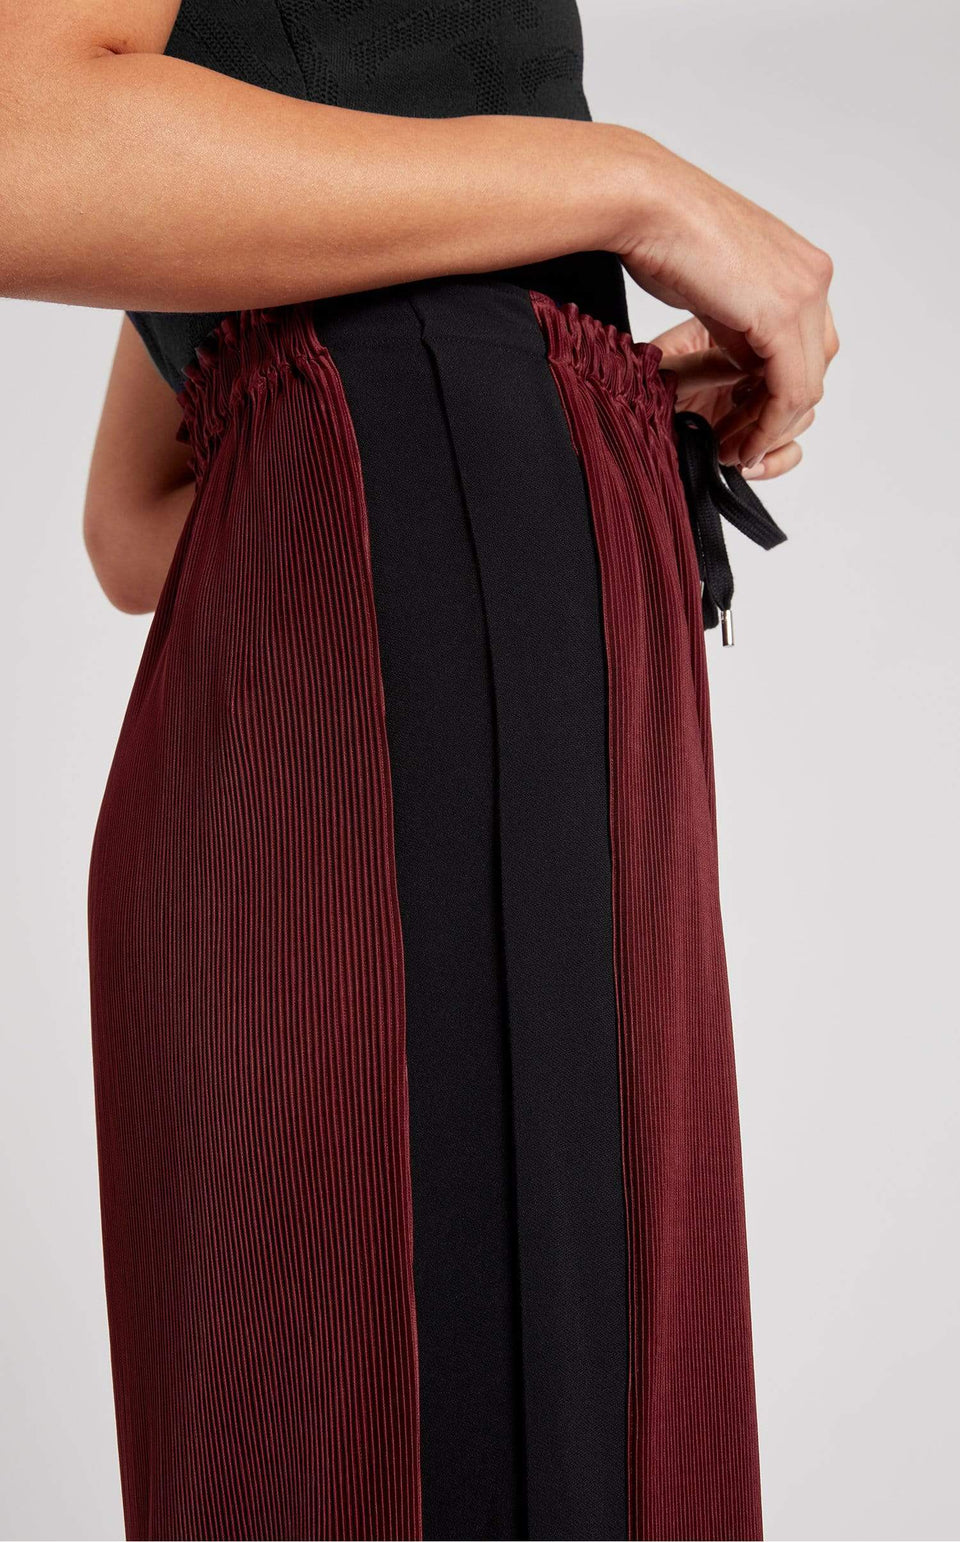 Haven Trouser In Cabernet/Black from Roland Mouret